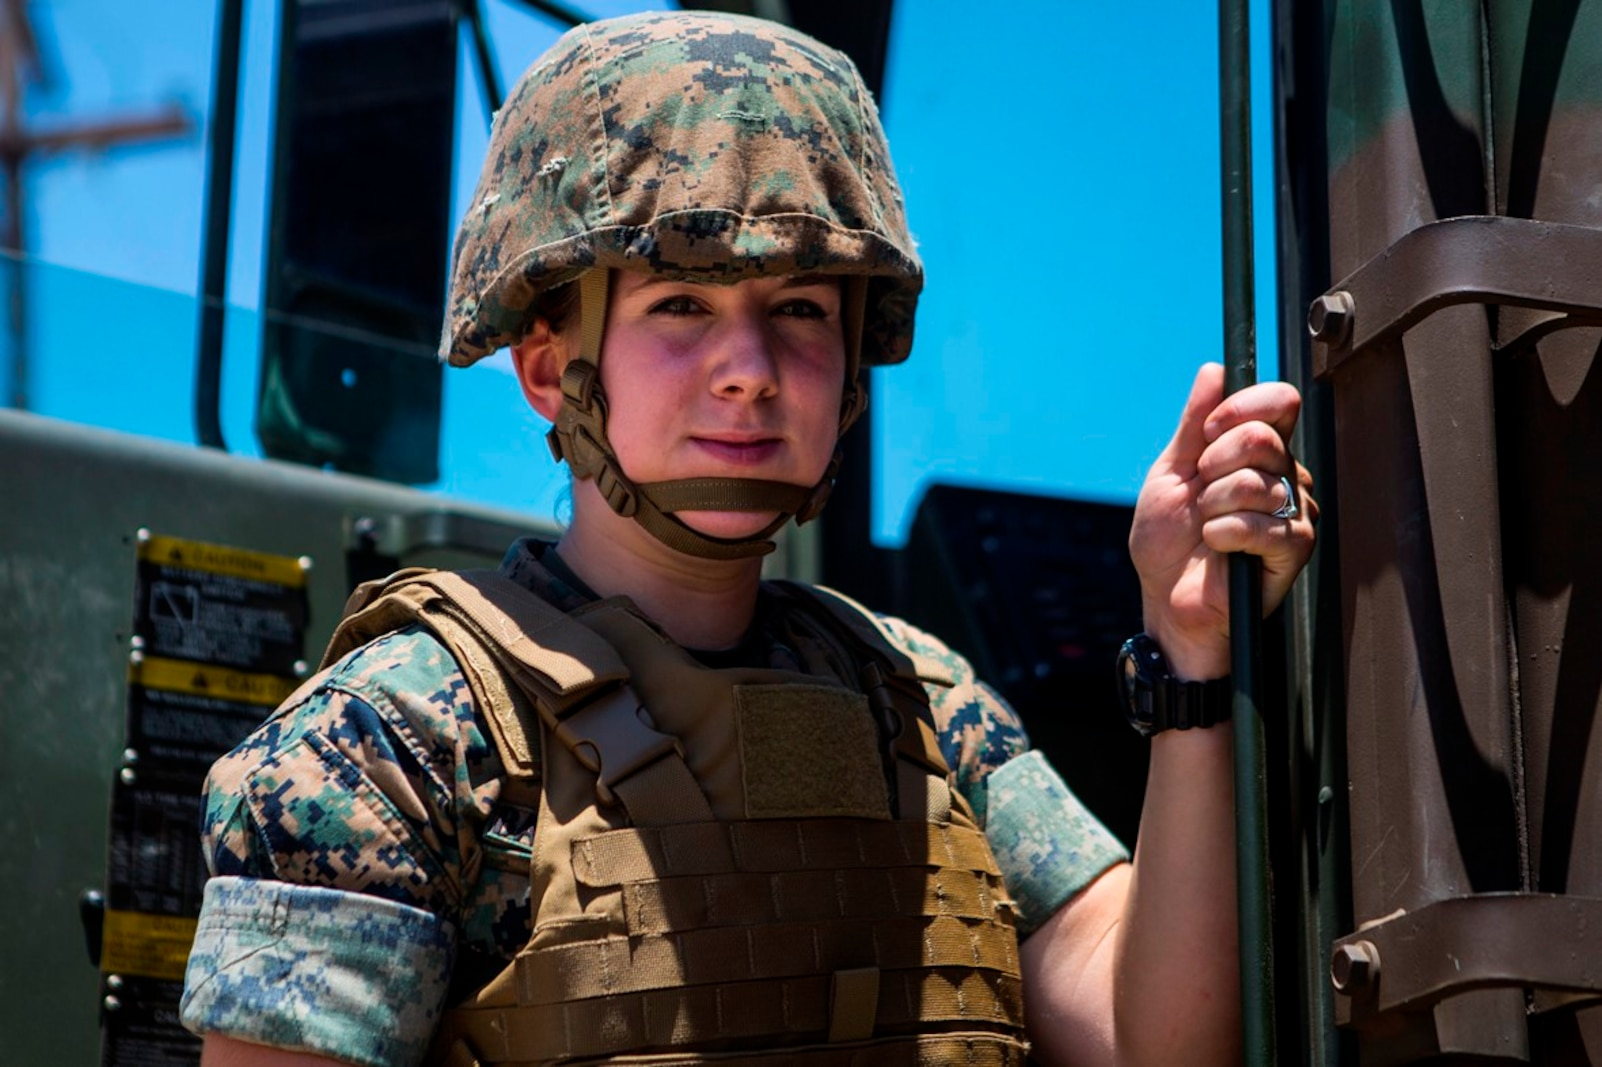 U.S. Marine Pfc. Heather Bartulewicz, a motor transport operator with Headquarters Regiment, 1st Marine Logistics Group, poses for a picture before climbing into a Medium Tactical Vehicle Replacement MK23 truck as she prepares to transport mission essential gear from one location to the next on Camp Pendleton, Calif., June 20, 2017. Motor Transport operators maintain and operate both commercial and tactical vehicles and are responsible for the transportation of everything from supplies and resources, to Marines and their equipment. (U.S. Marine Corps photo by Lance Cpl. Joseph Sorci)